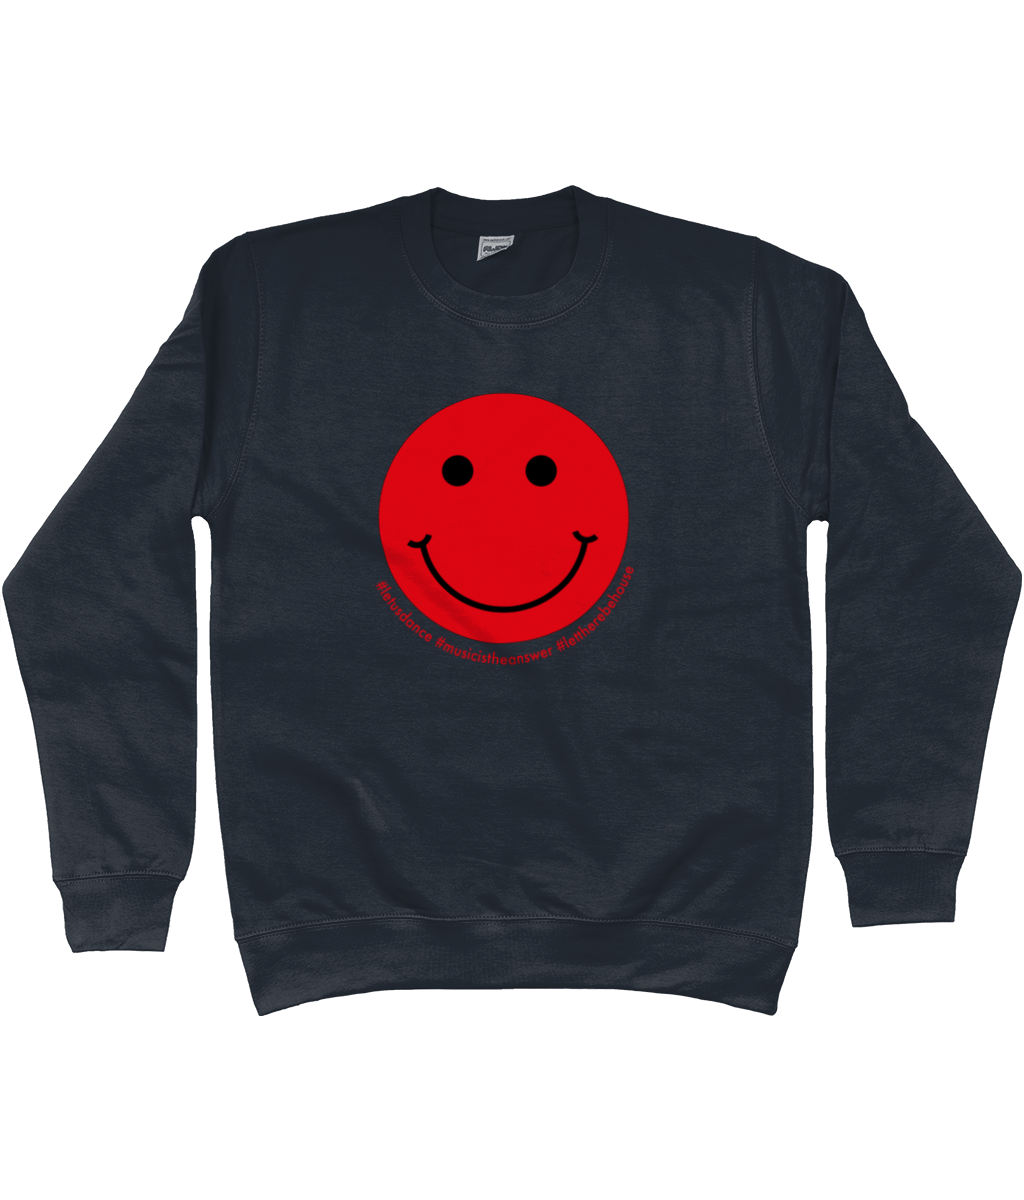 Sweatshirt Smiley Red